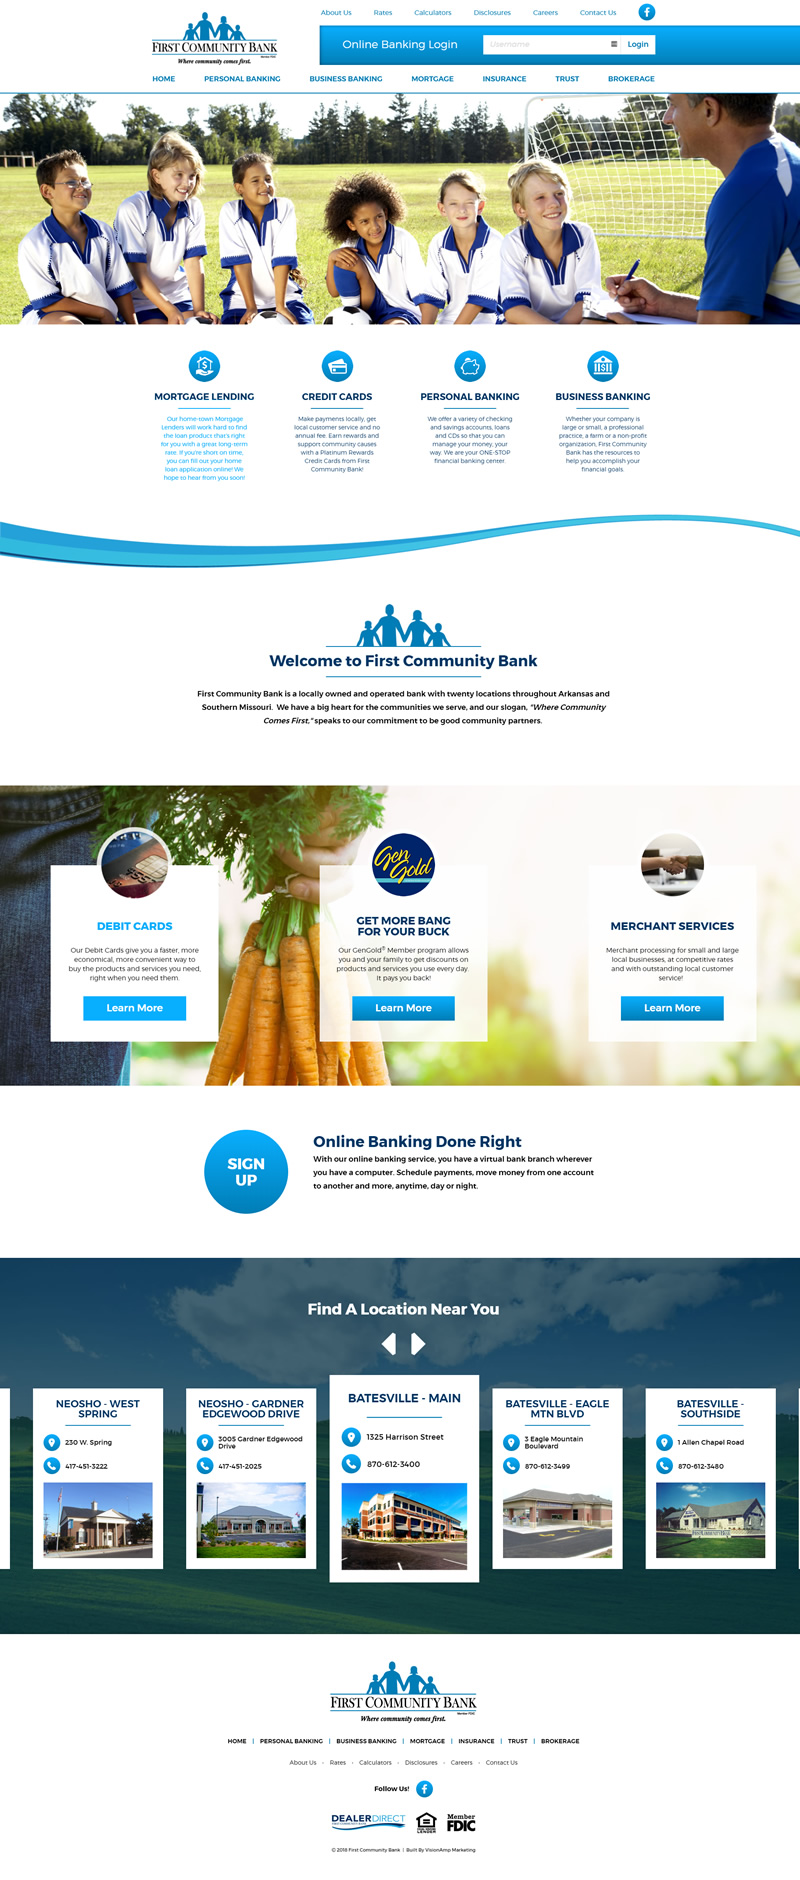 First Community Bank Full Web Design Image